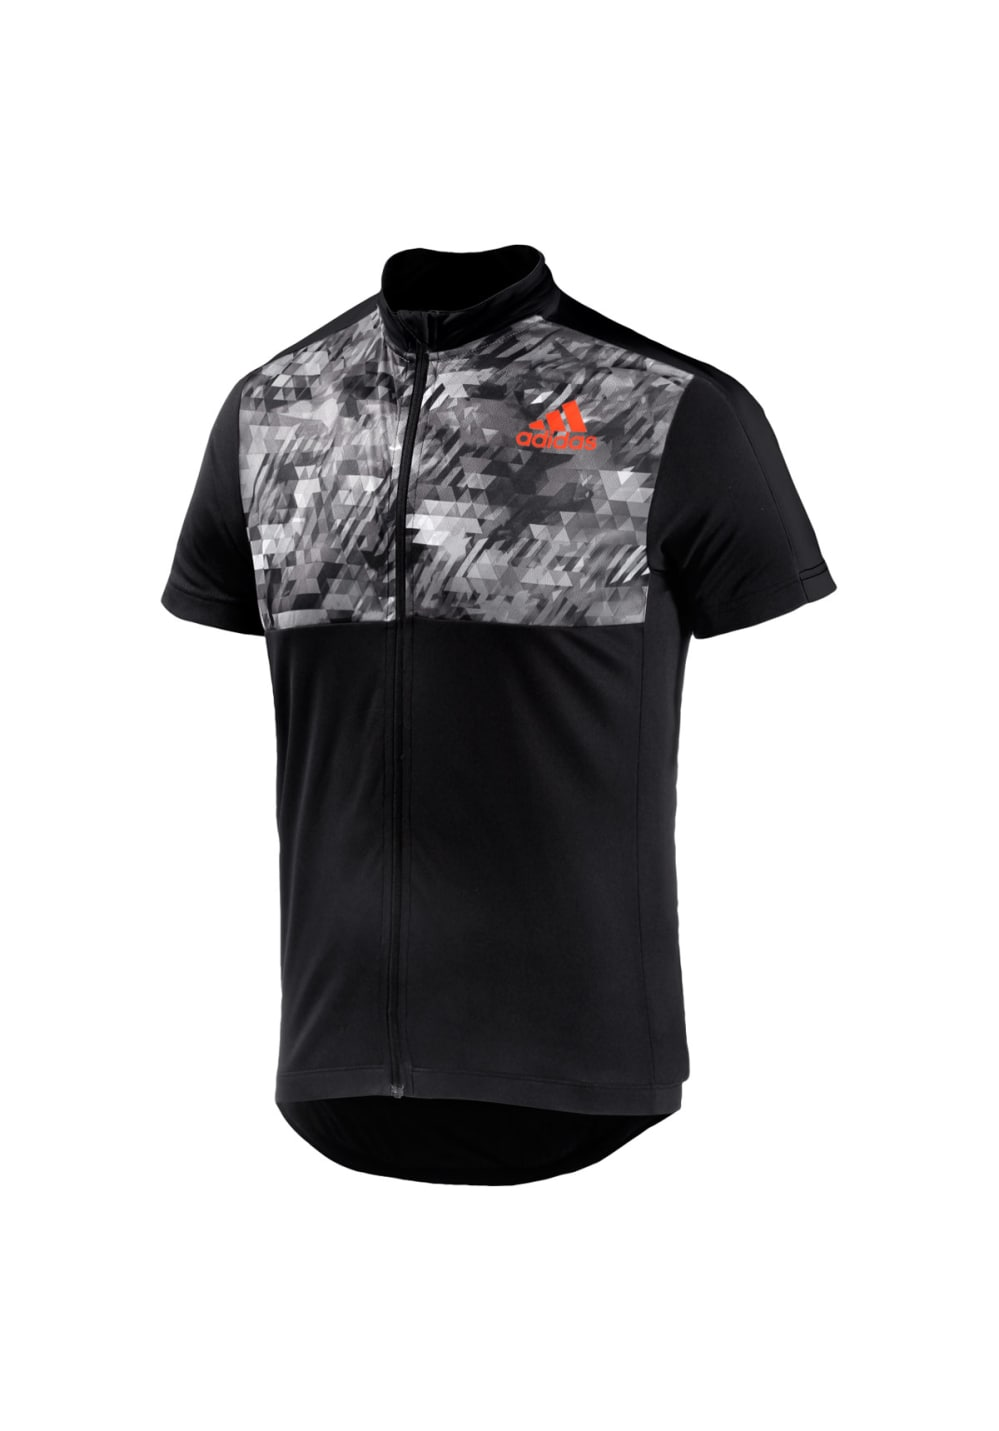 Noir Race Adidas Sleeve Trail Cyclisme Maillots Homme Short Jersey Pour SVMGqUzp